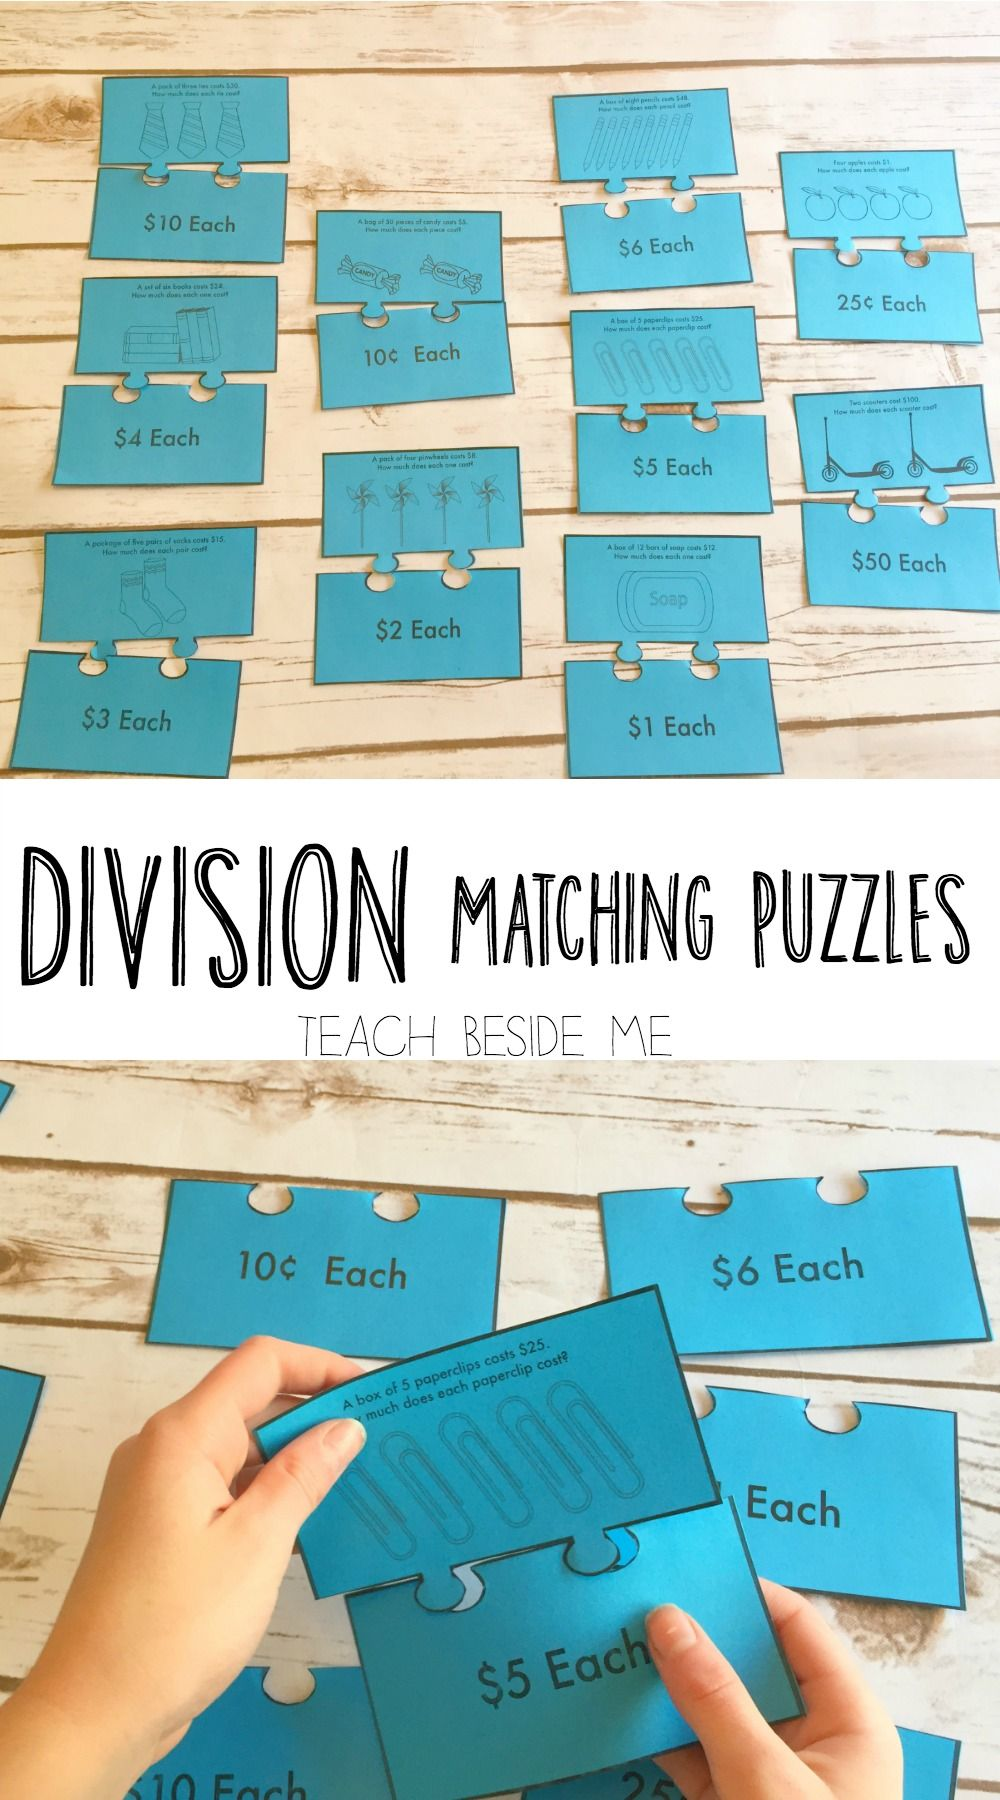 Division matching puzzles | Fun math games, Fun math and Division